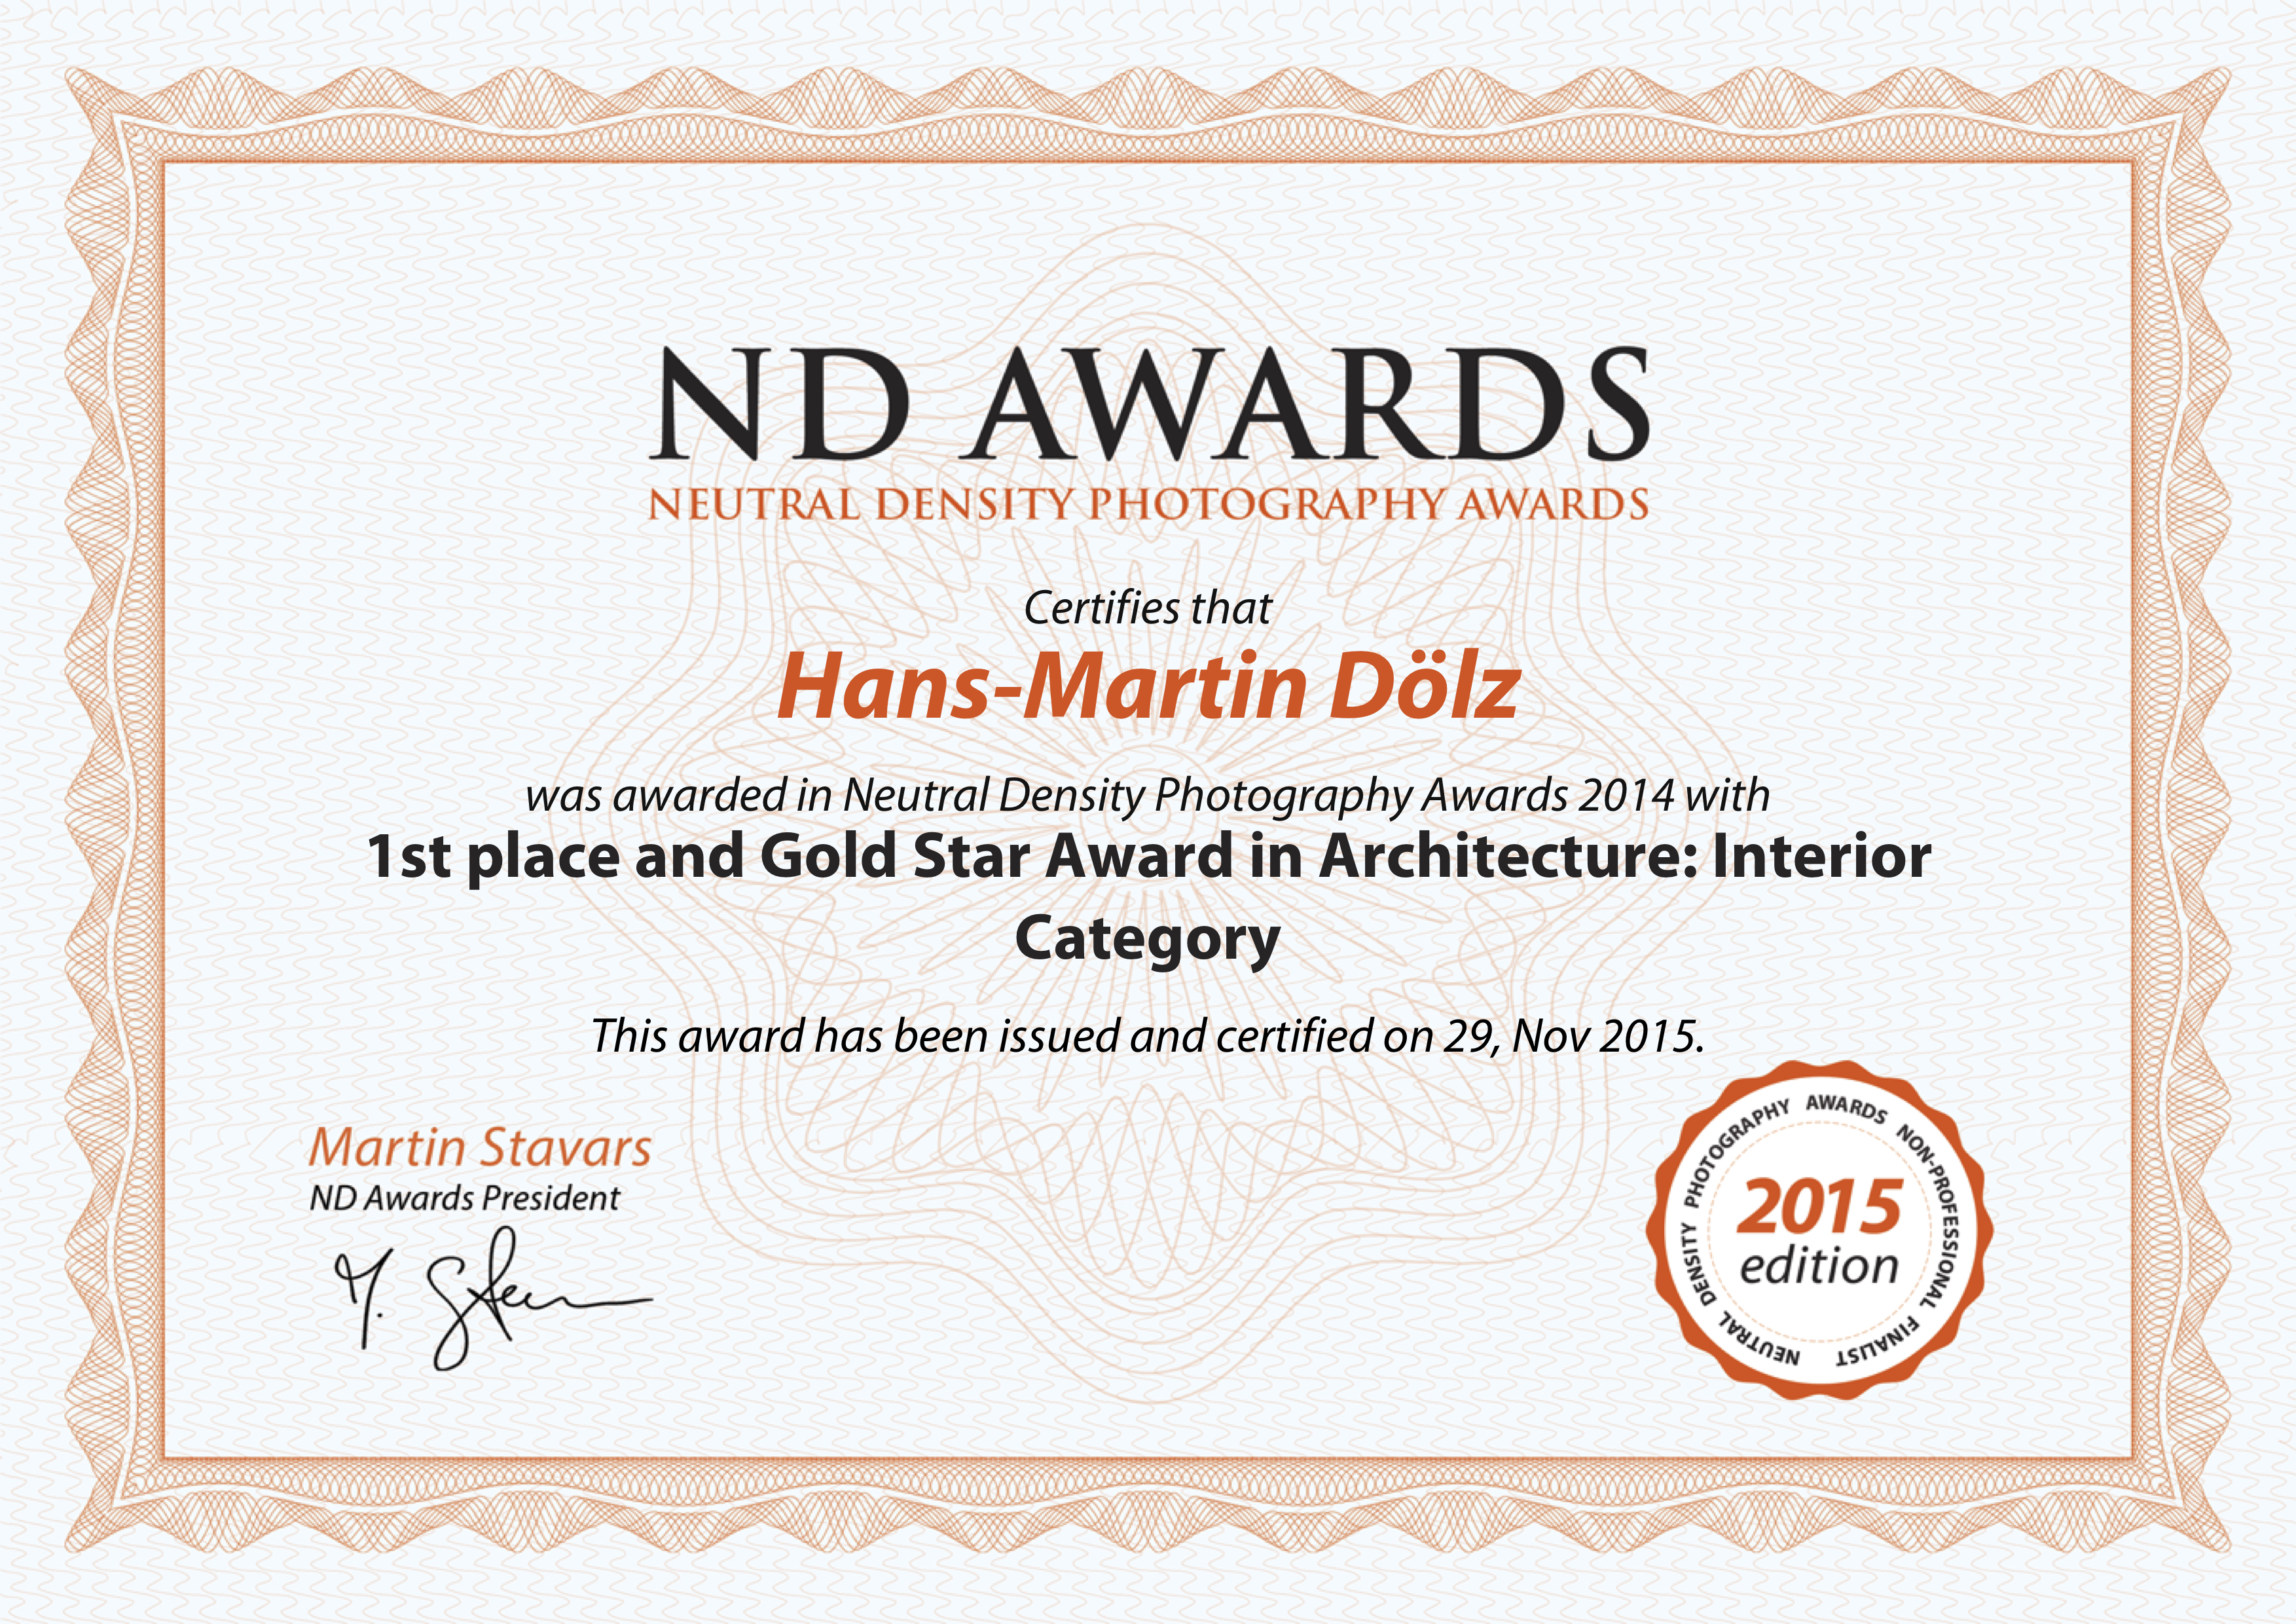 ND AWARDS_certificate_Hans-Martin_Doelz 2015 1st place gold star